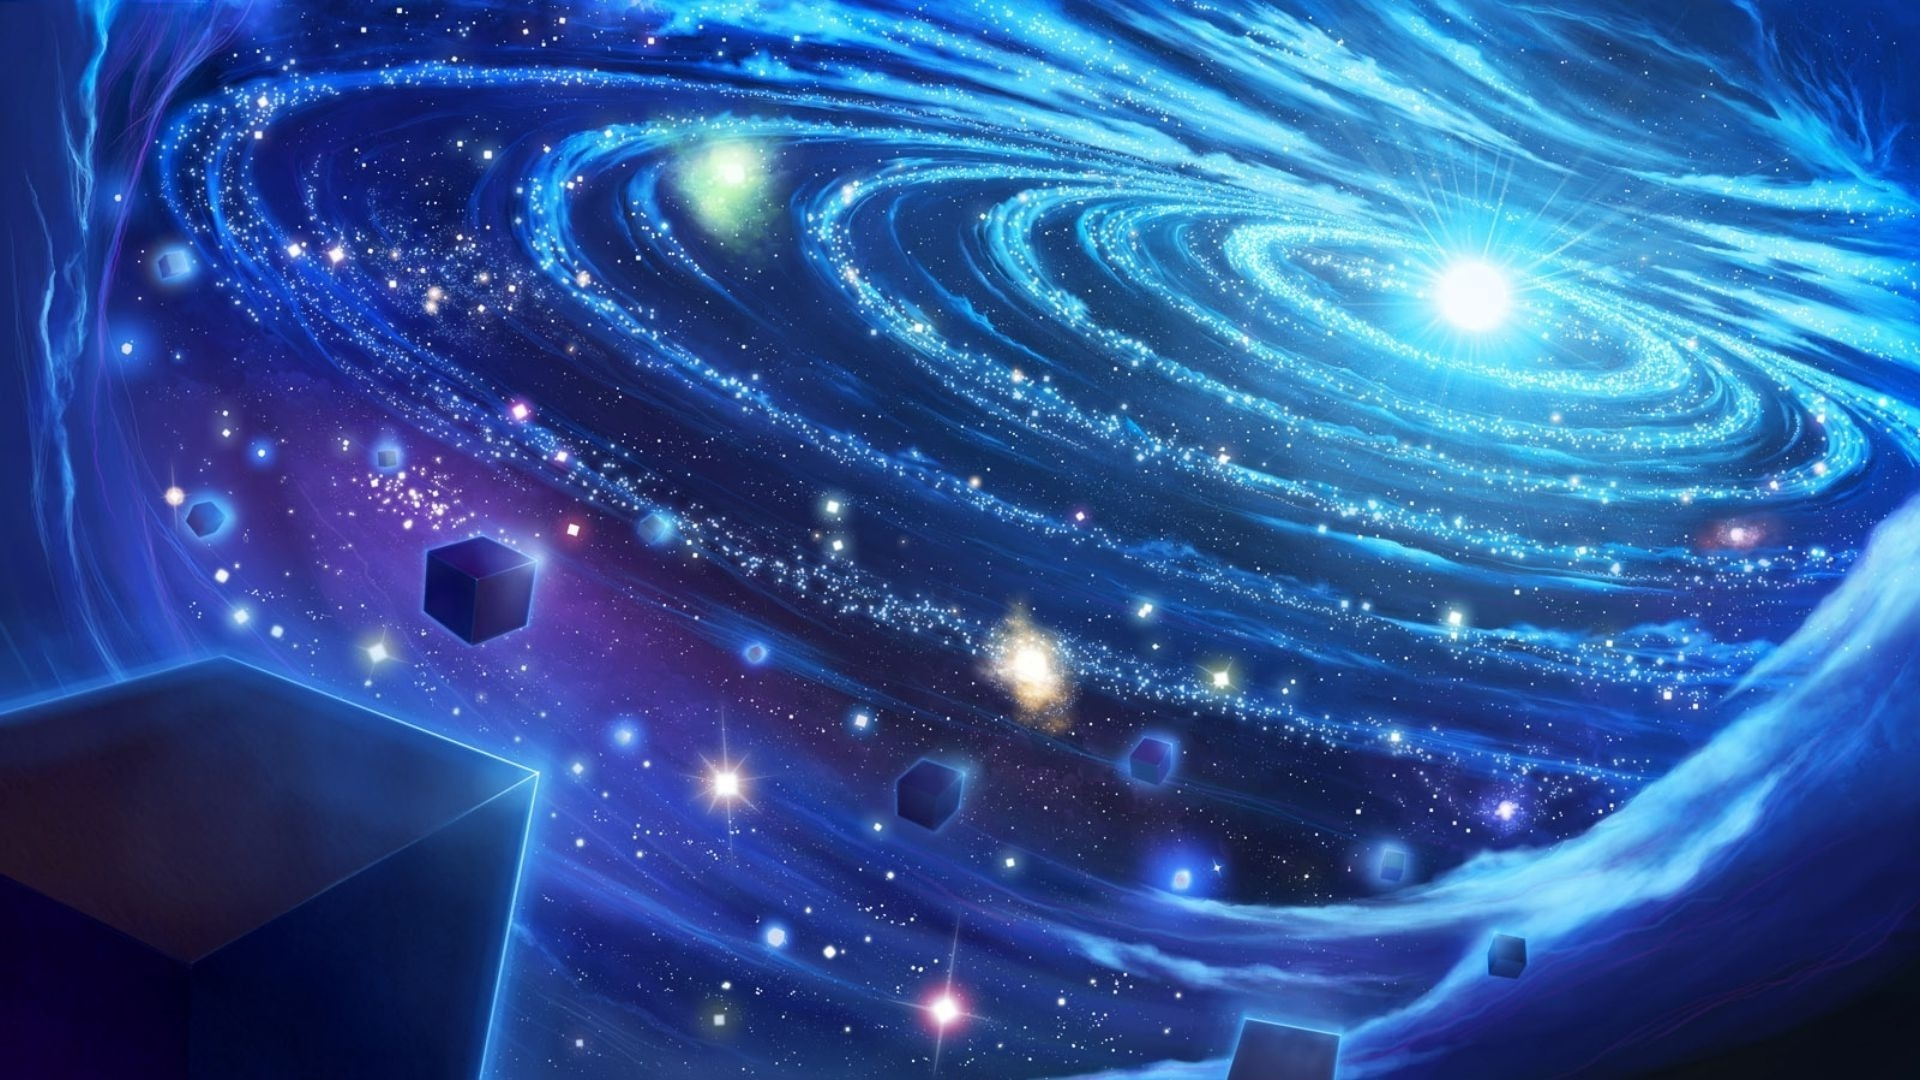 Blue space wallpaper 22917 1920x1080